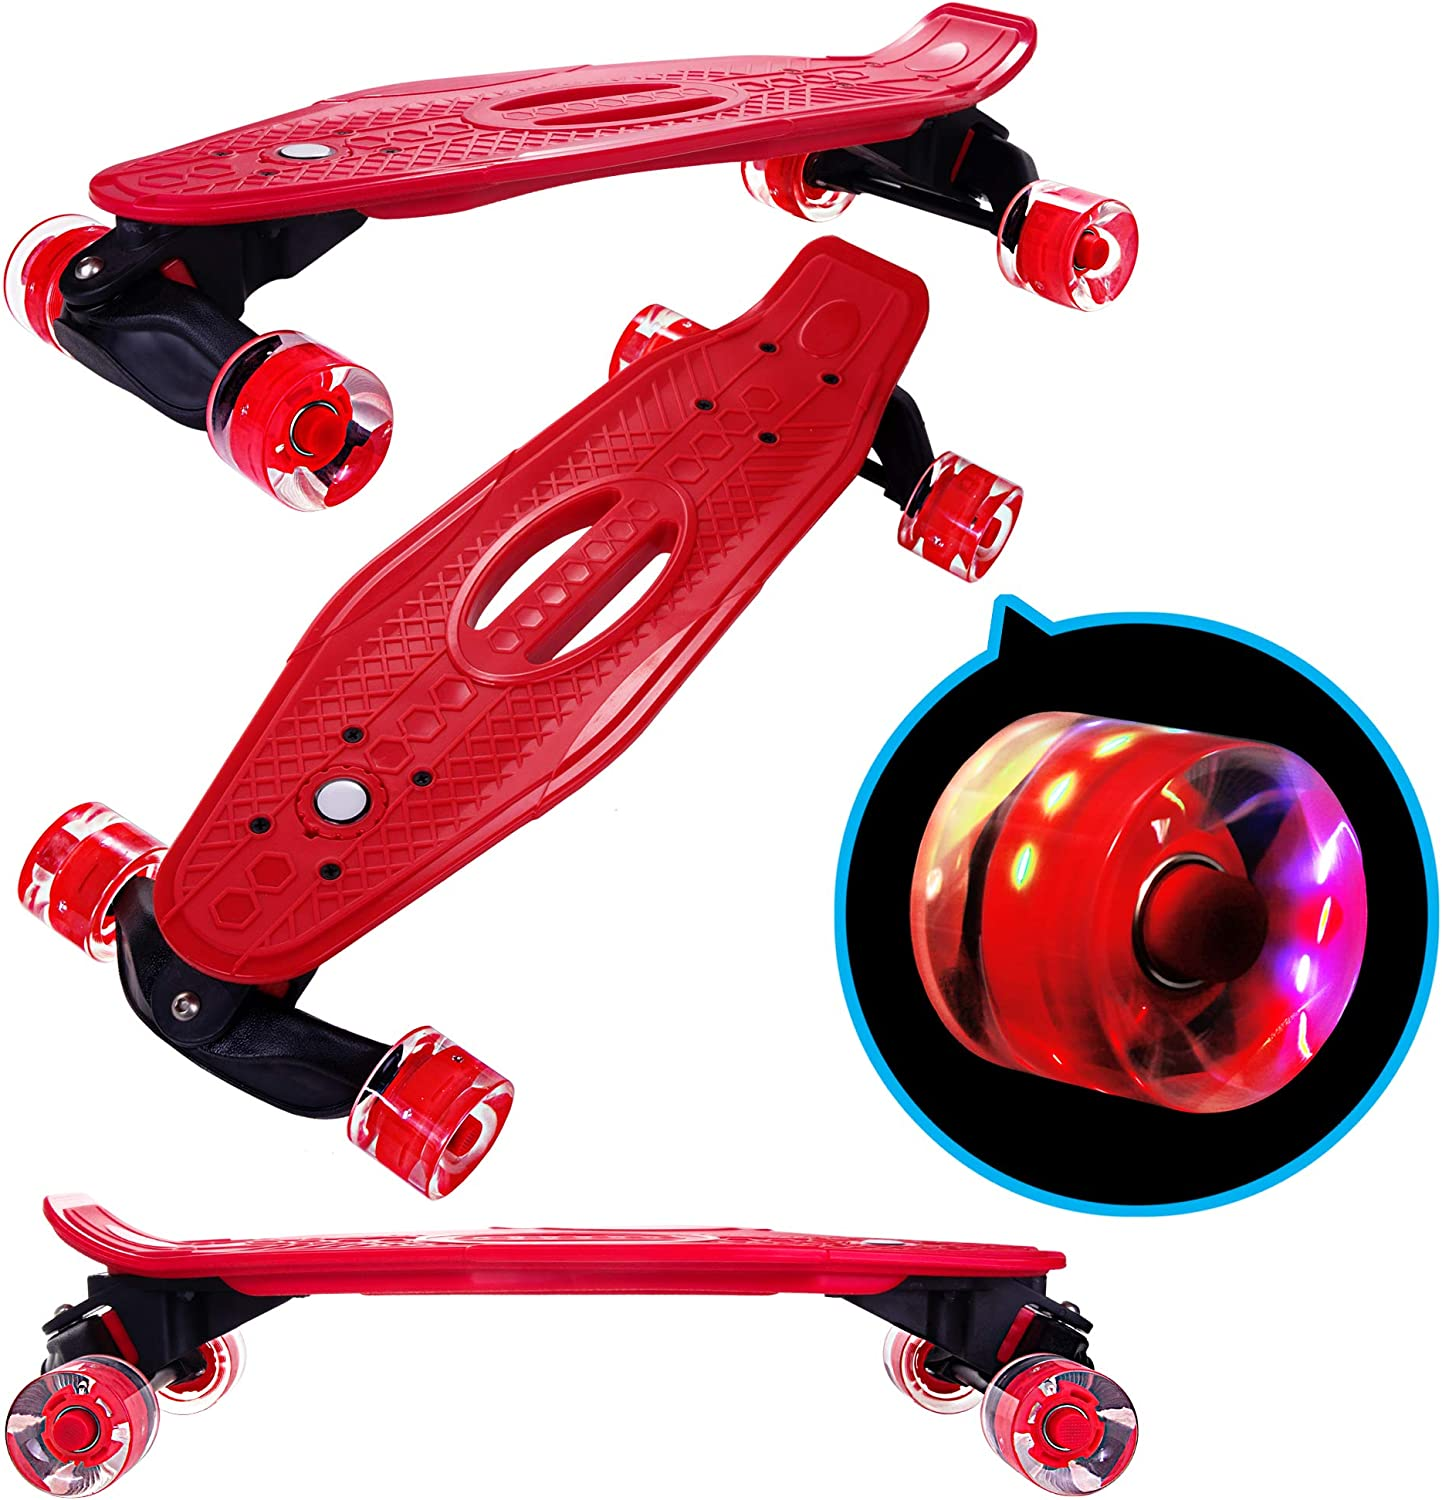 Latest design skateboard for kids. Skateboard with hold design. Skateboard for 5 year old